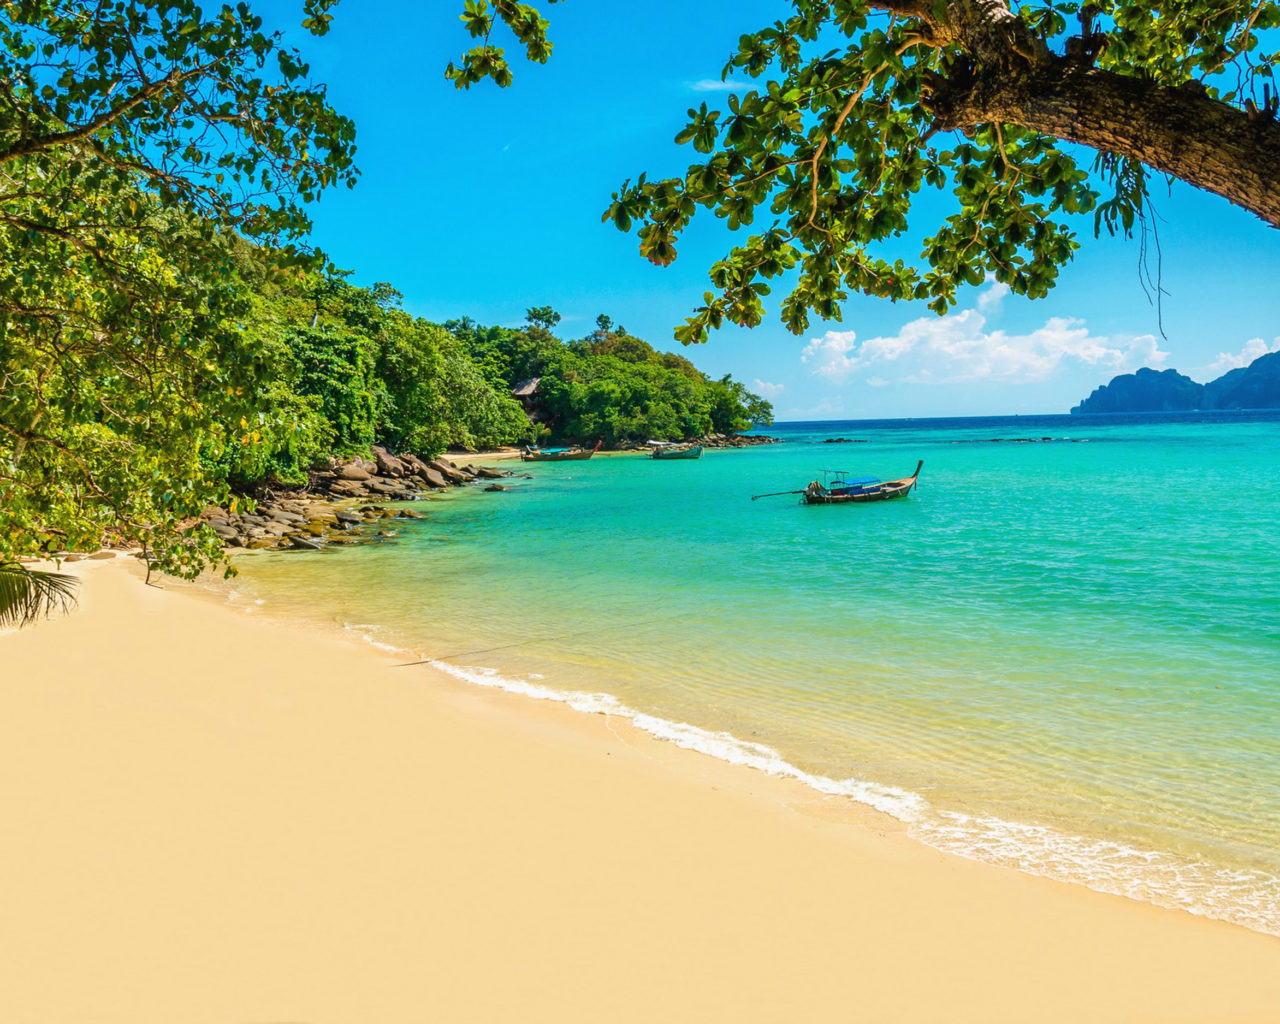 Wipeout Hd Wallpaper Thailand The Most Beautiful Beaches In Cao Lak Peninsula